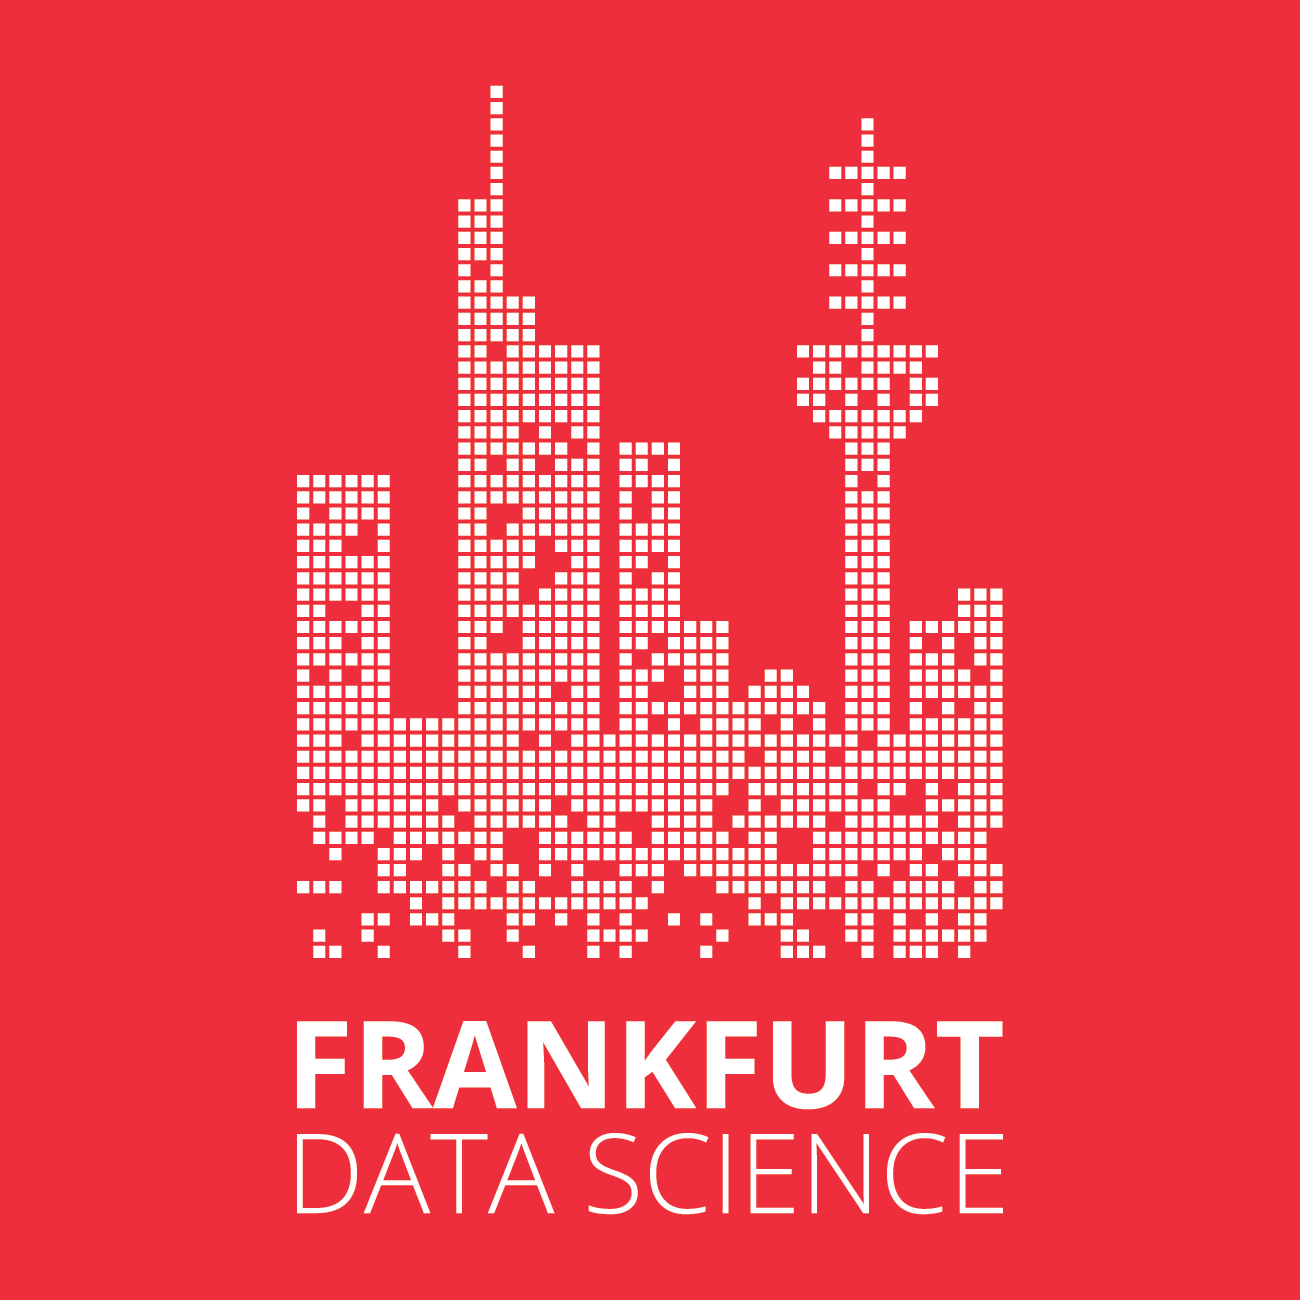 frankfurt_data_science_meetup_logo_red